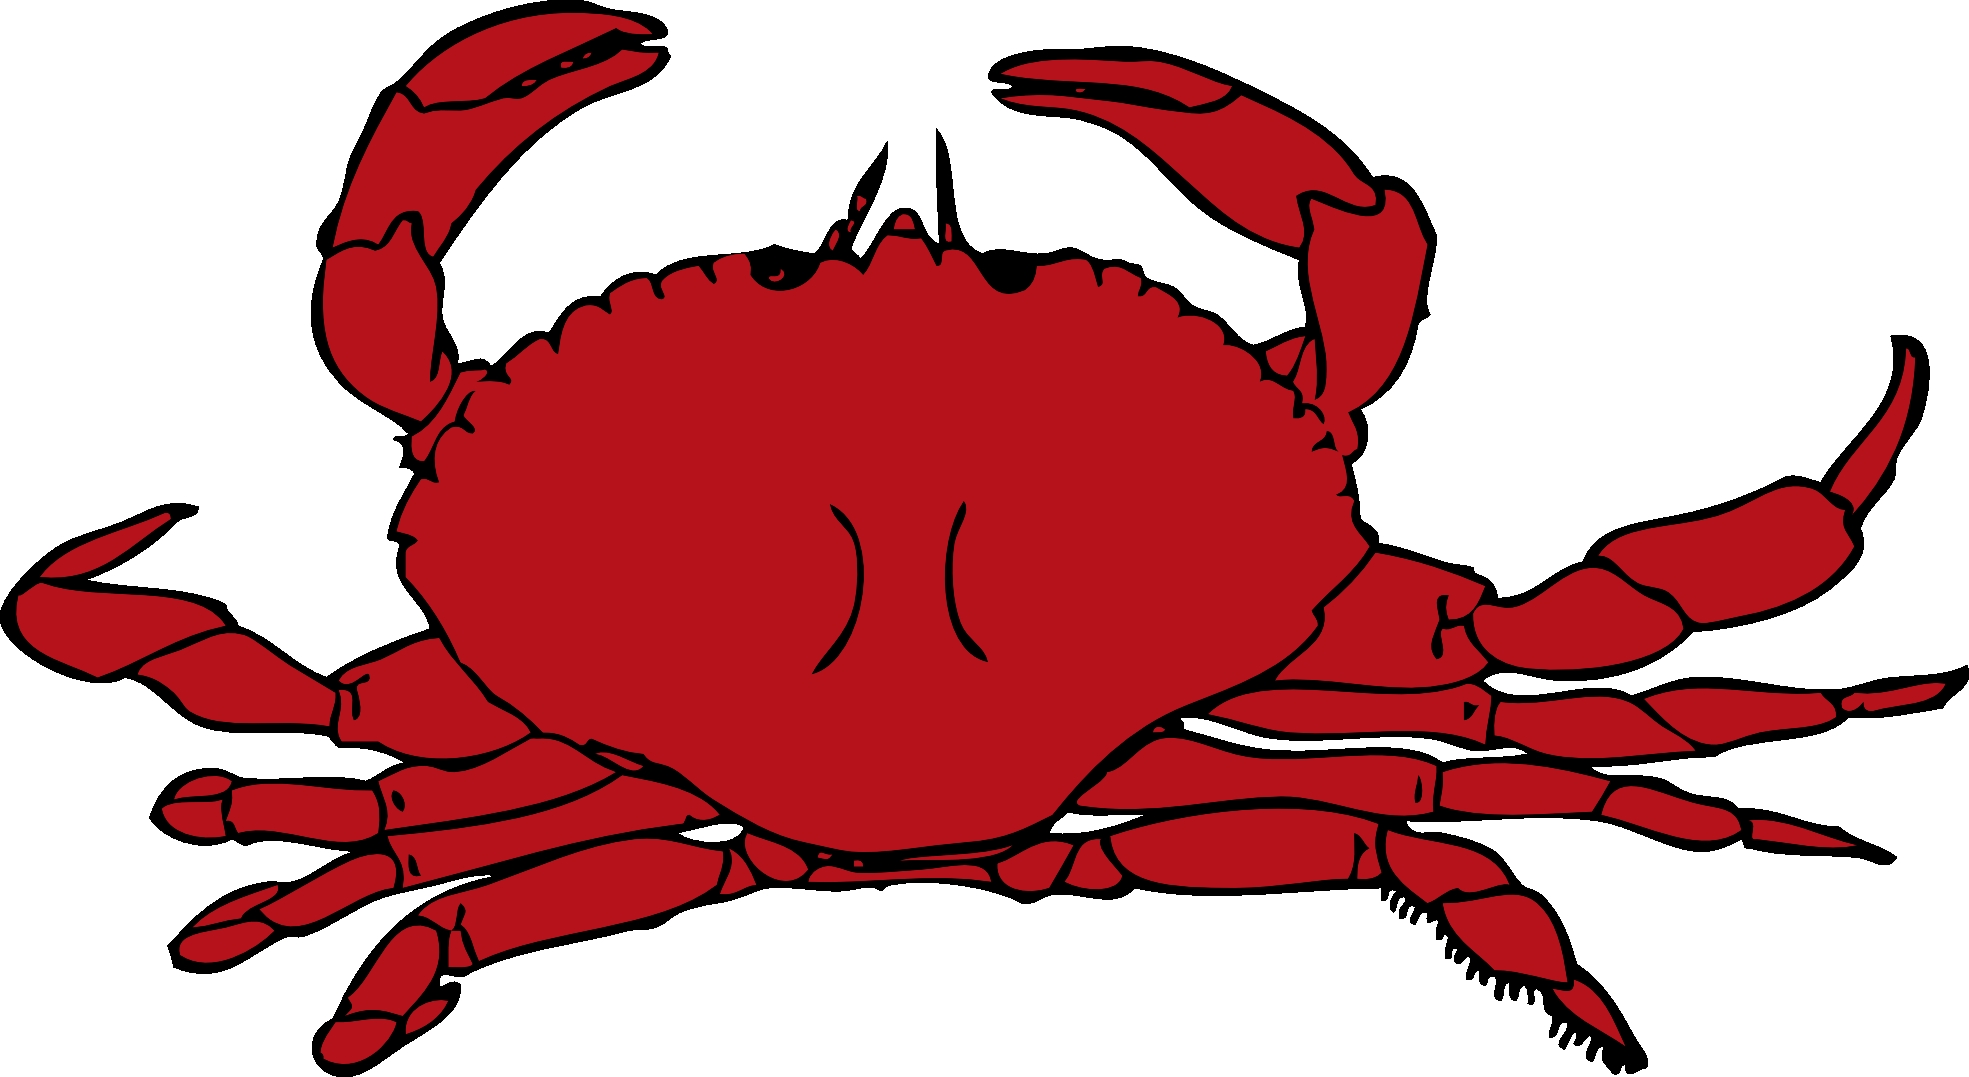 Crab clipart. Best of gallery digital